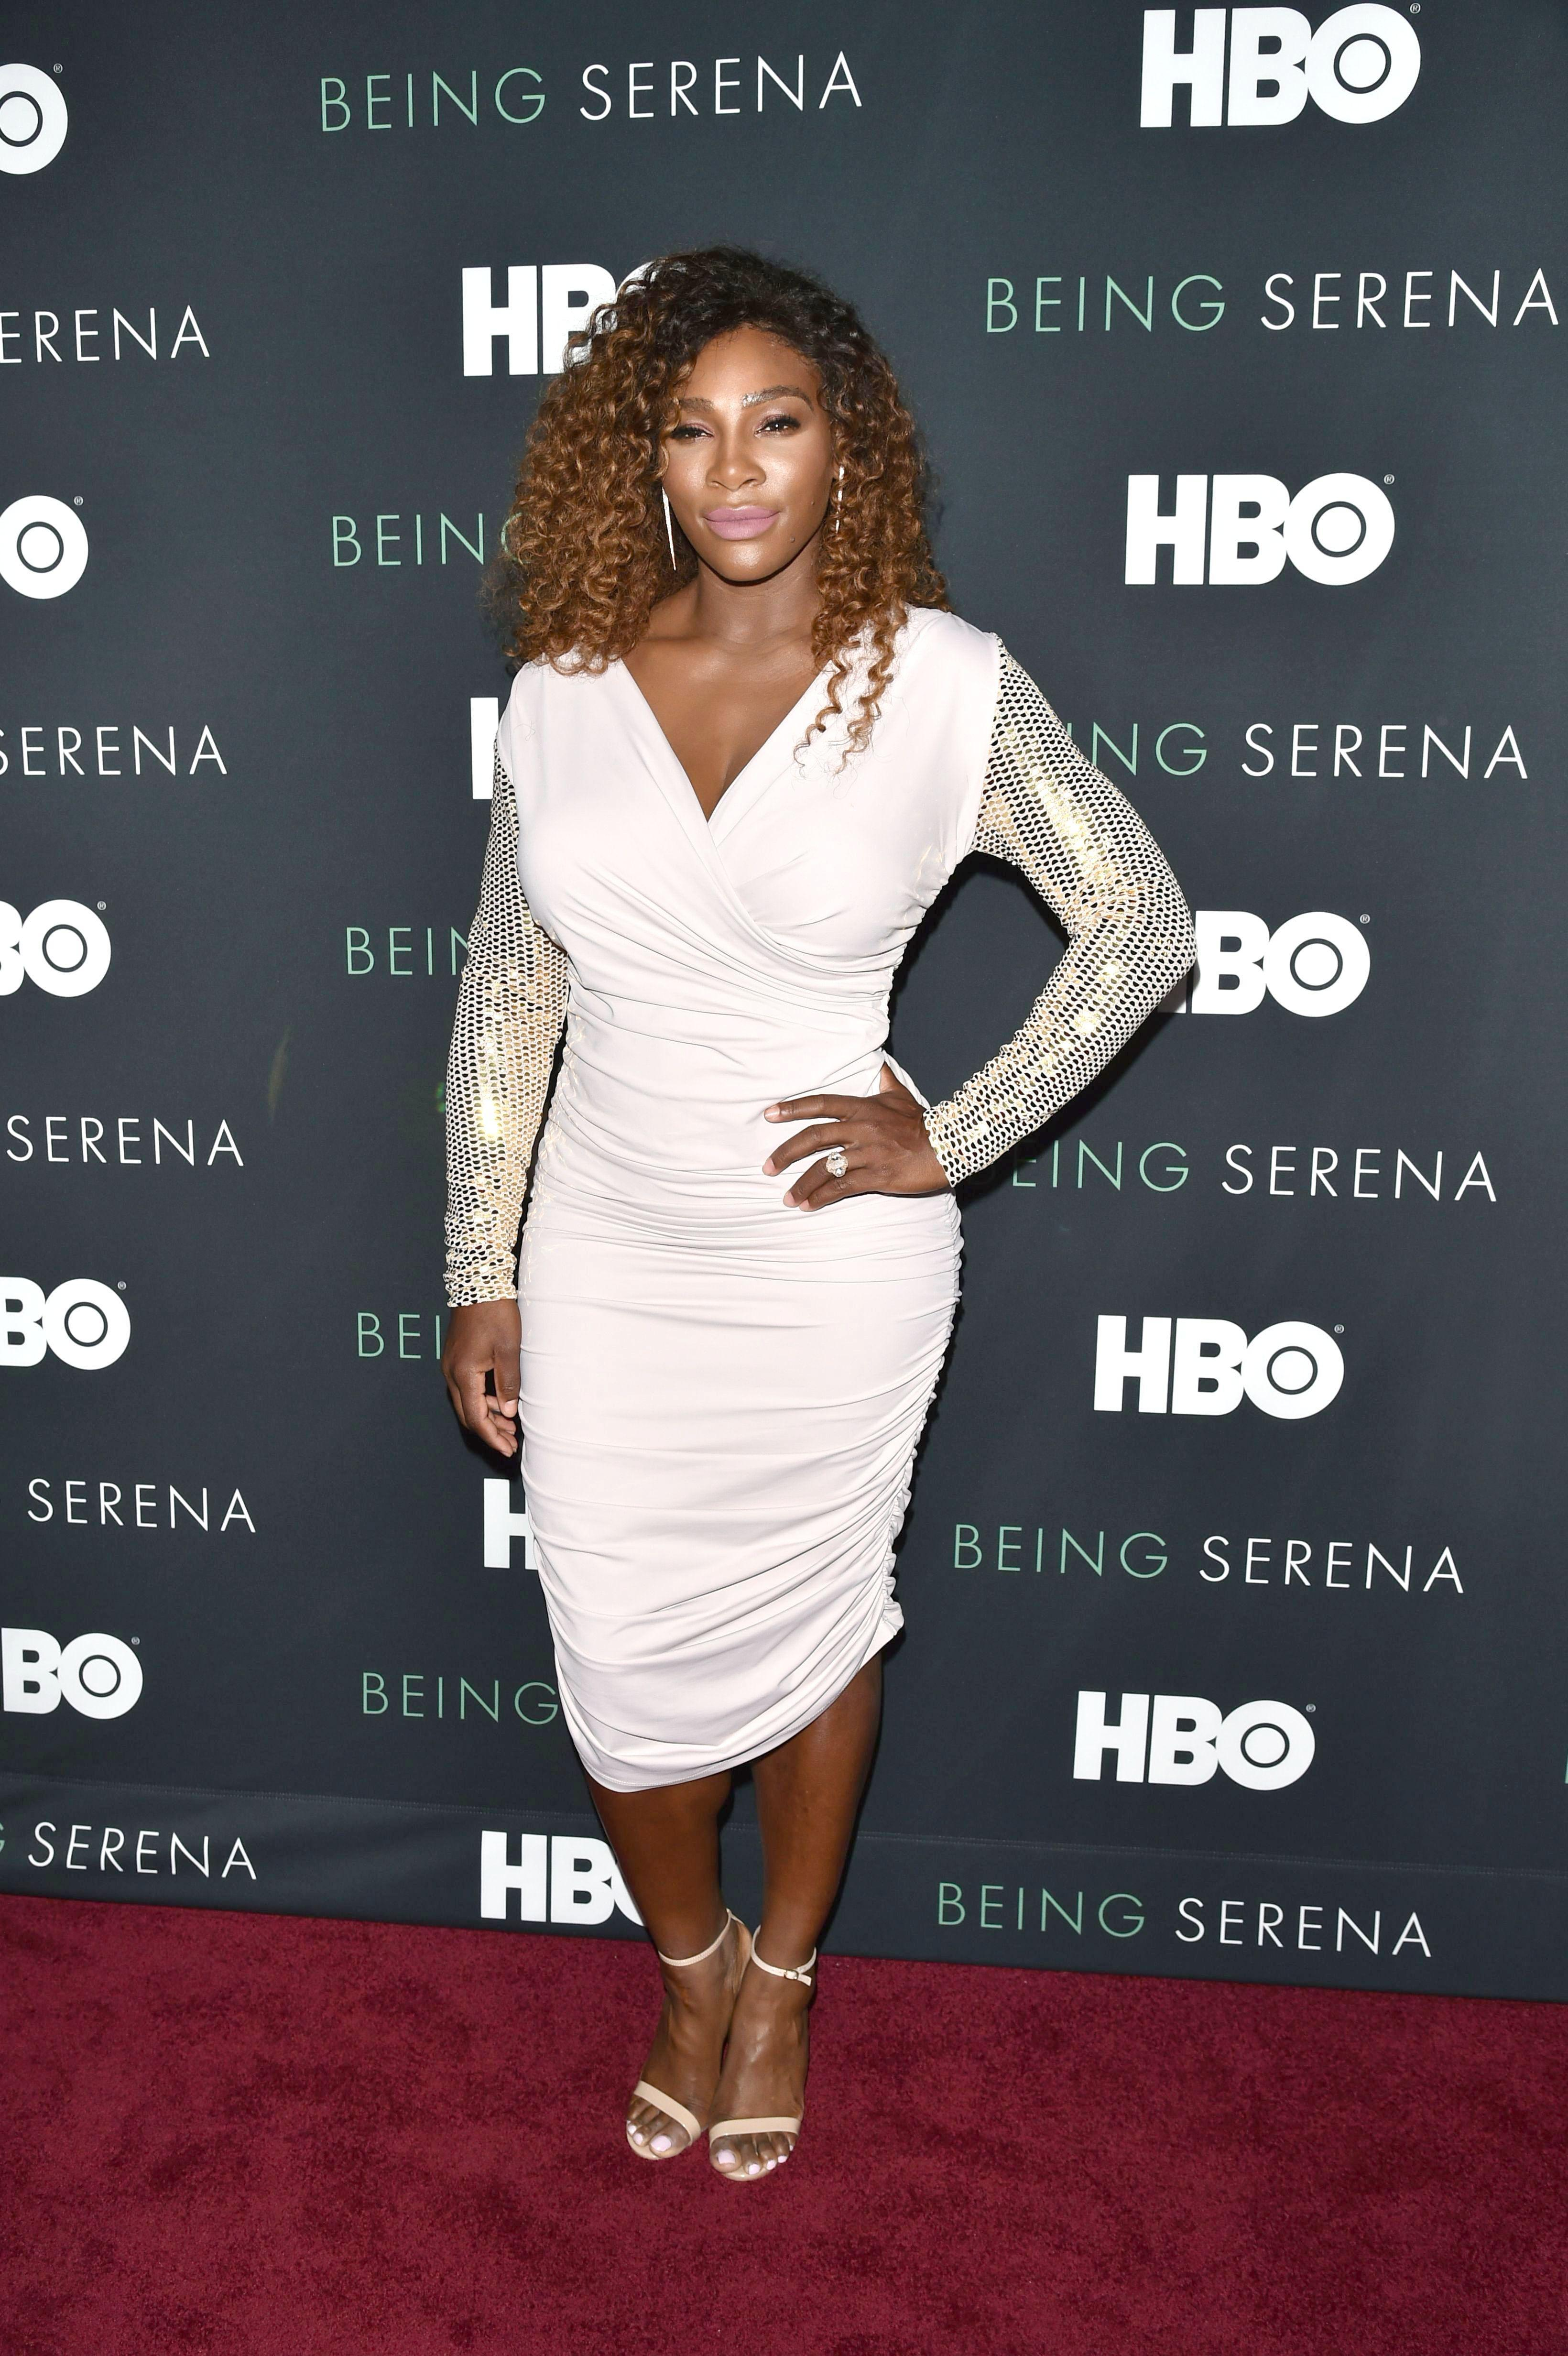 serena williams sexy feet pictures